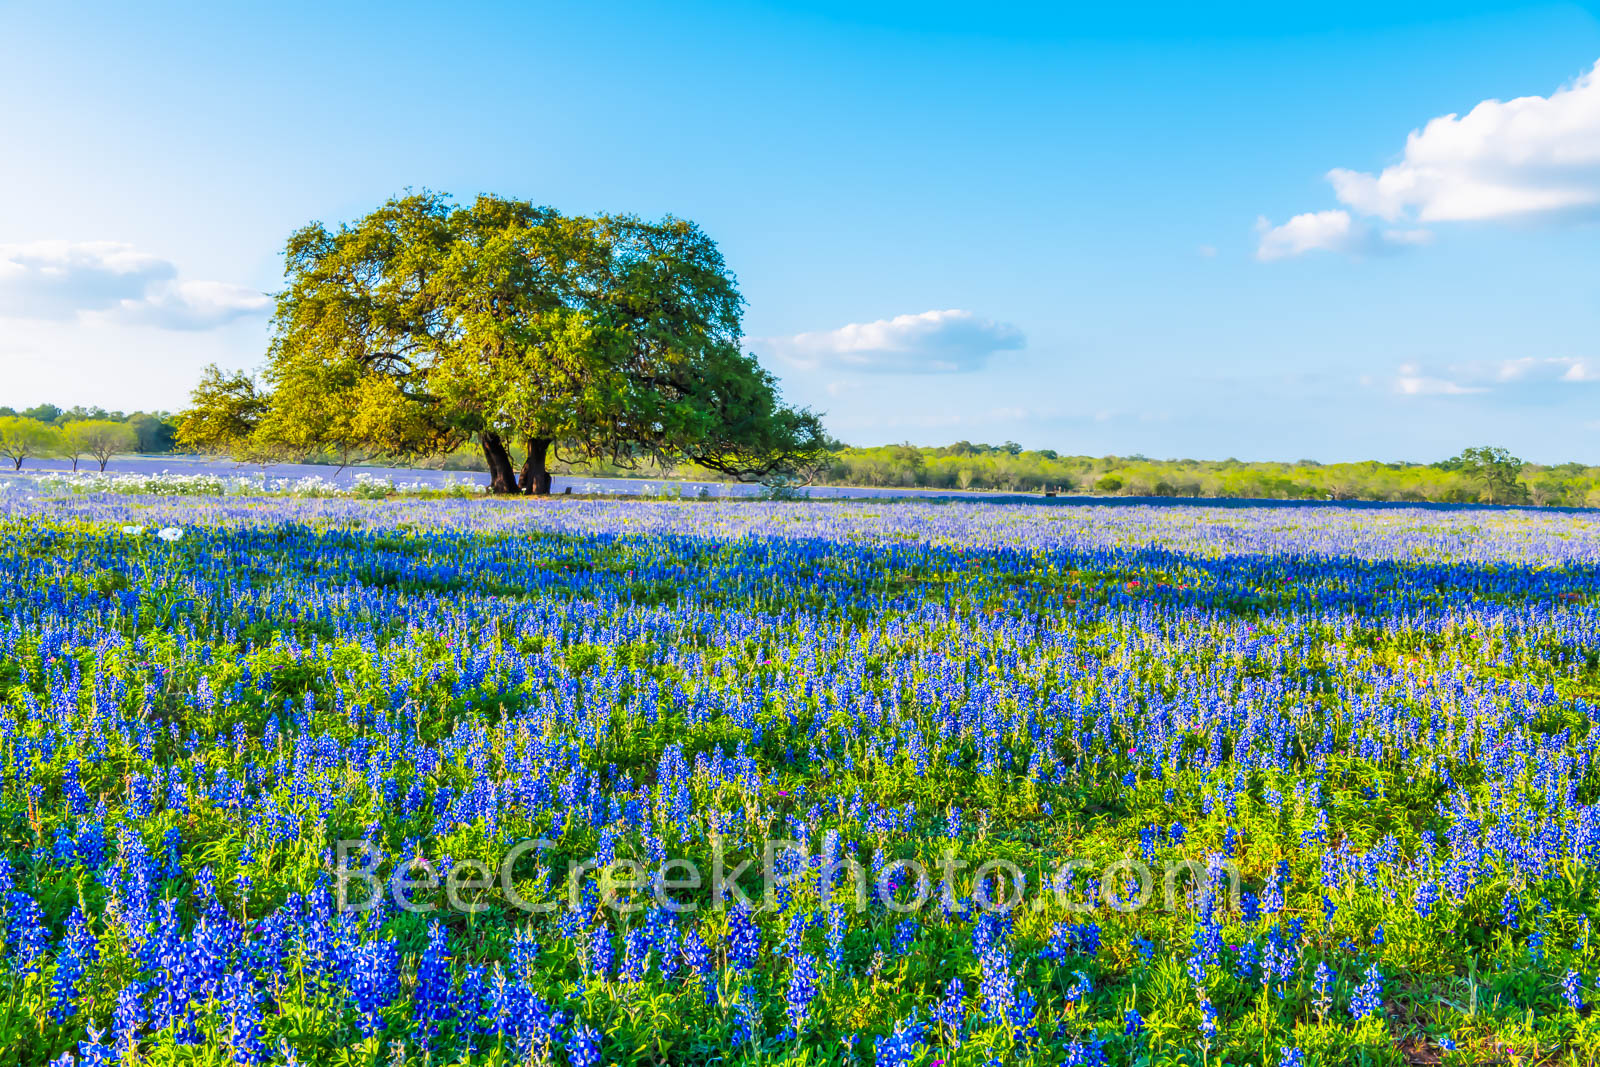 oak tree, bluebonnets, mesquite trees, ranch, poppies, texas wildflowers, San Antonio, Poteet, Texas, green, blue, field, south texas, images of texas, bluebonnets in texas, tx,